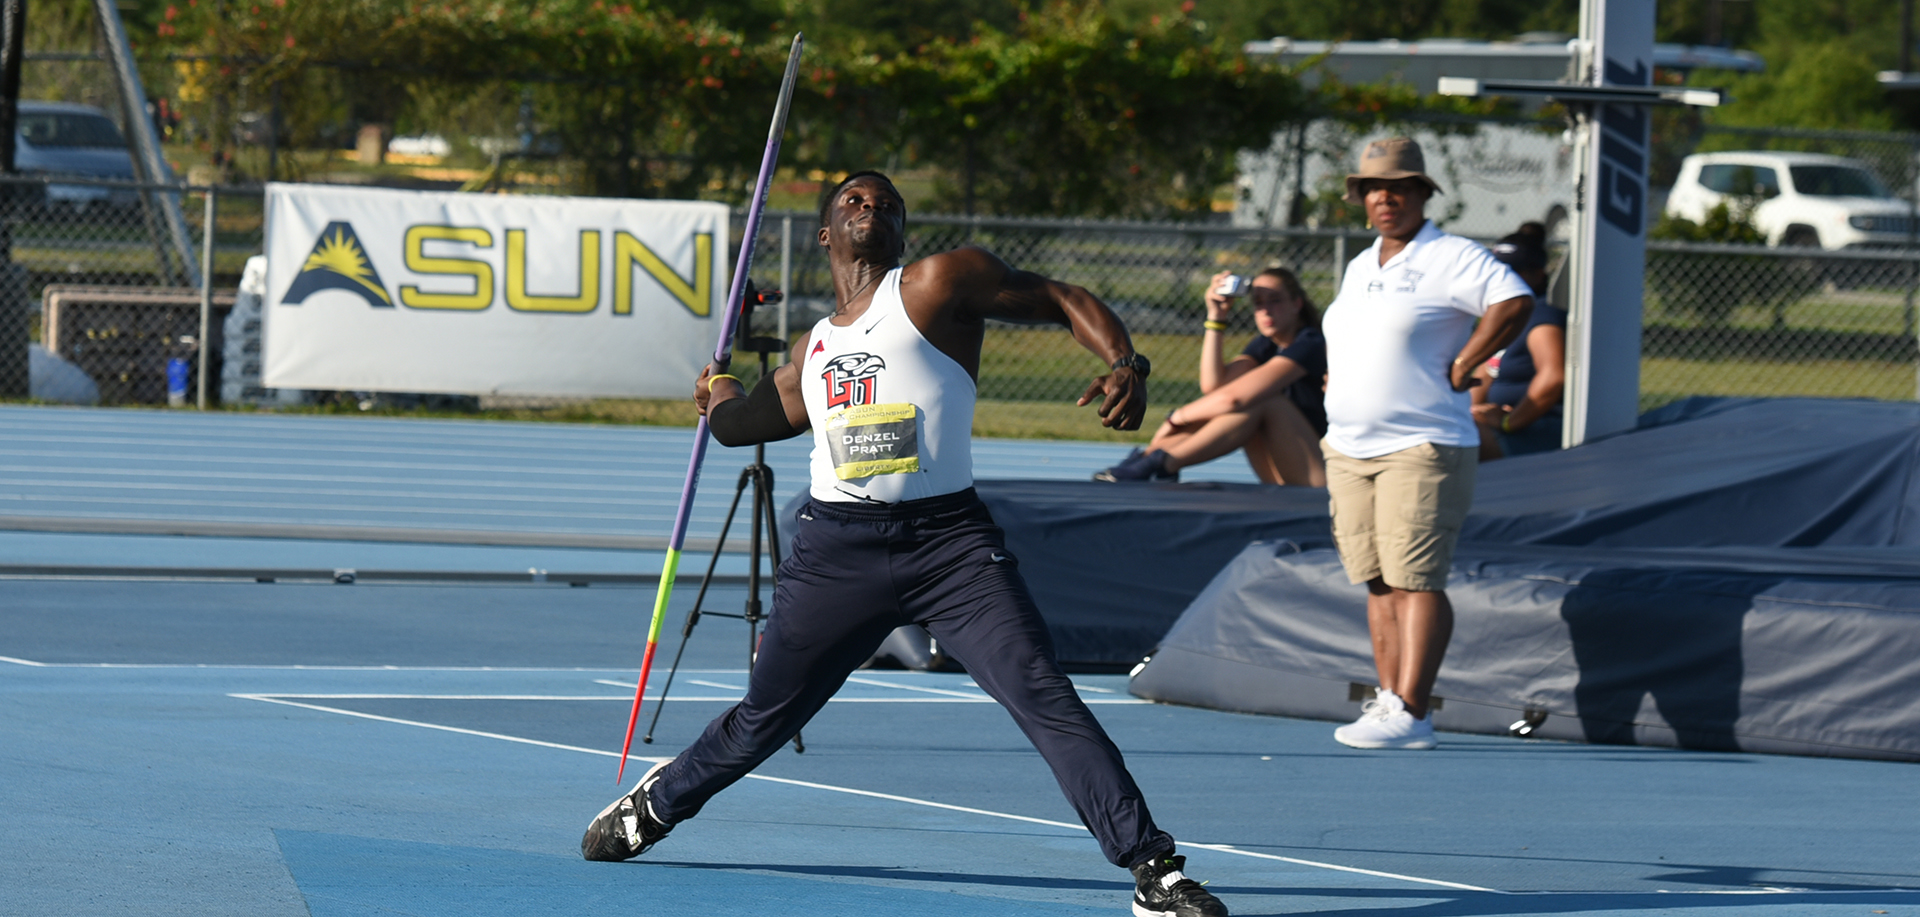 The beginning of the outdoor season means Denzel Pratt will get to throw the javelin for the first time in 2017.